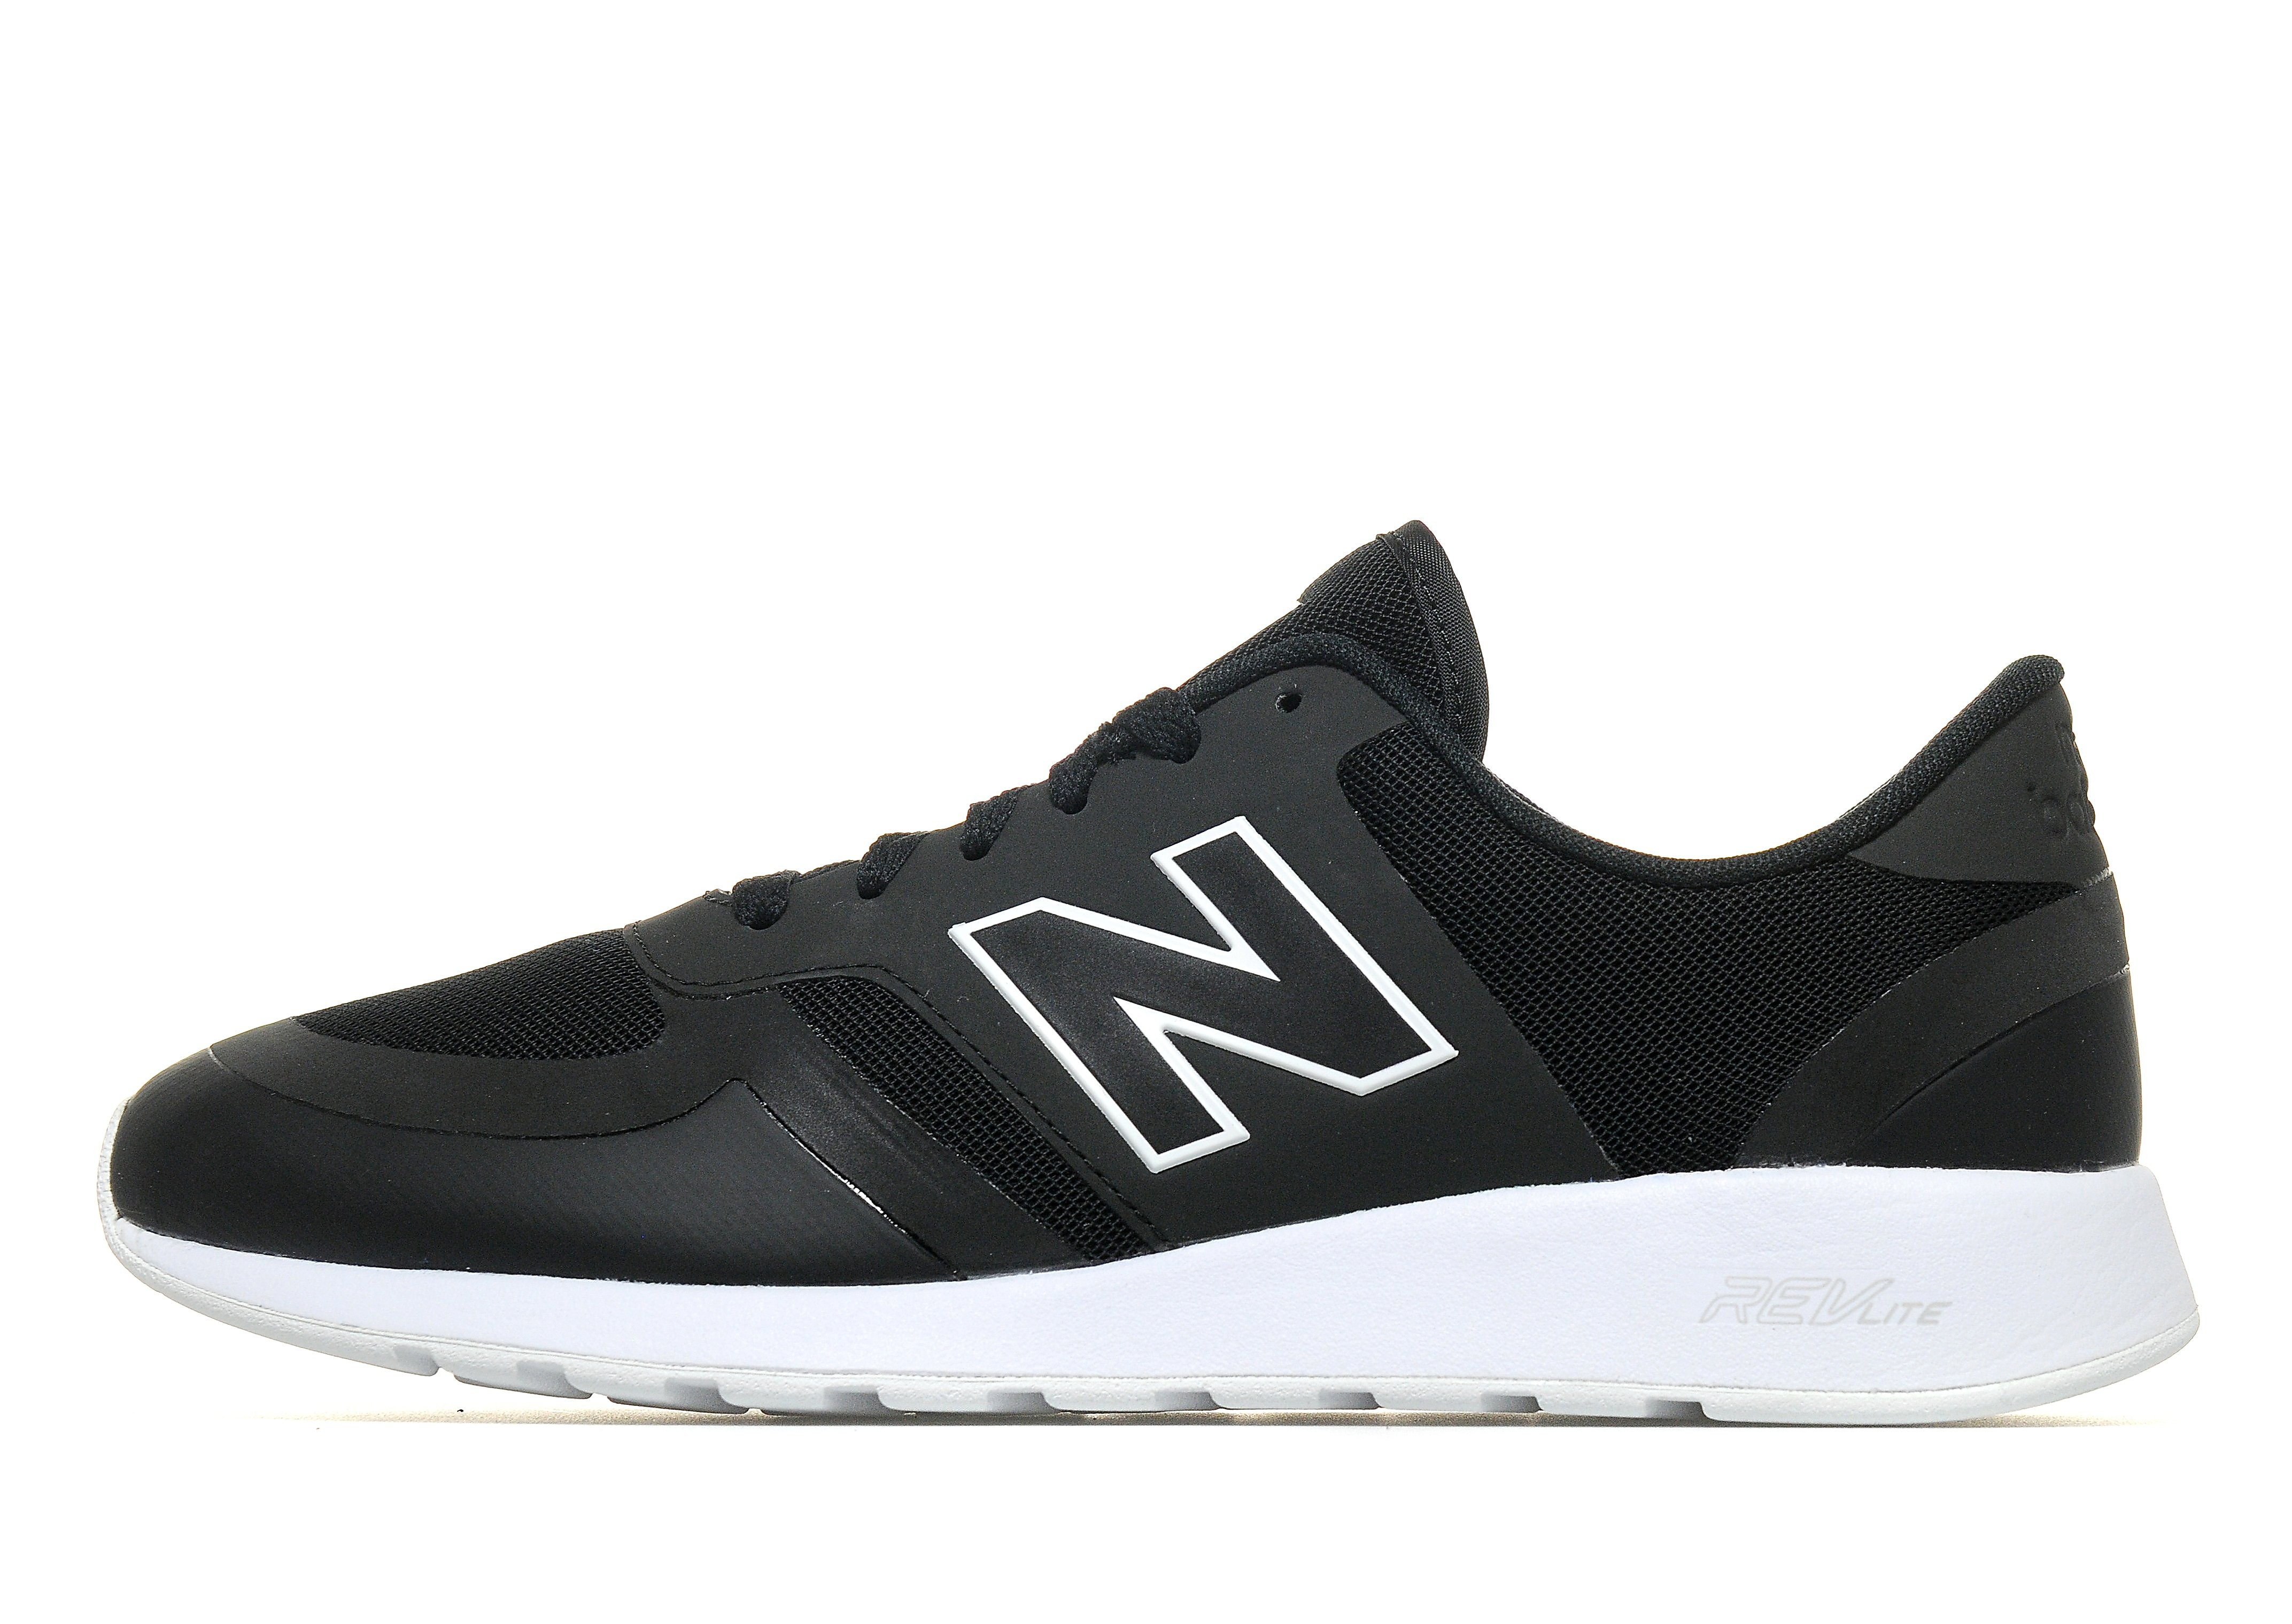 New Balance 420 Reflective Re-Engineered